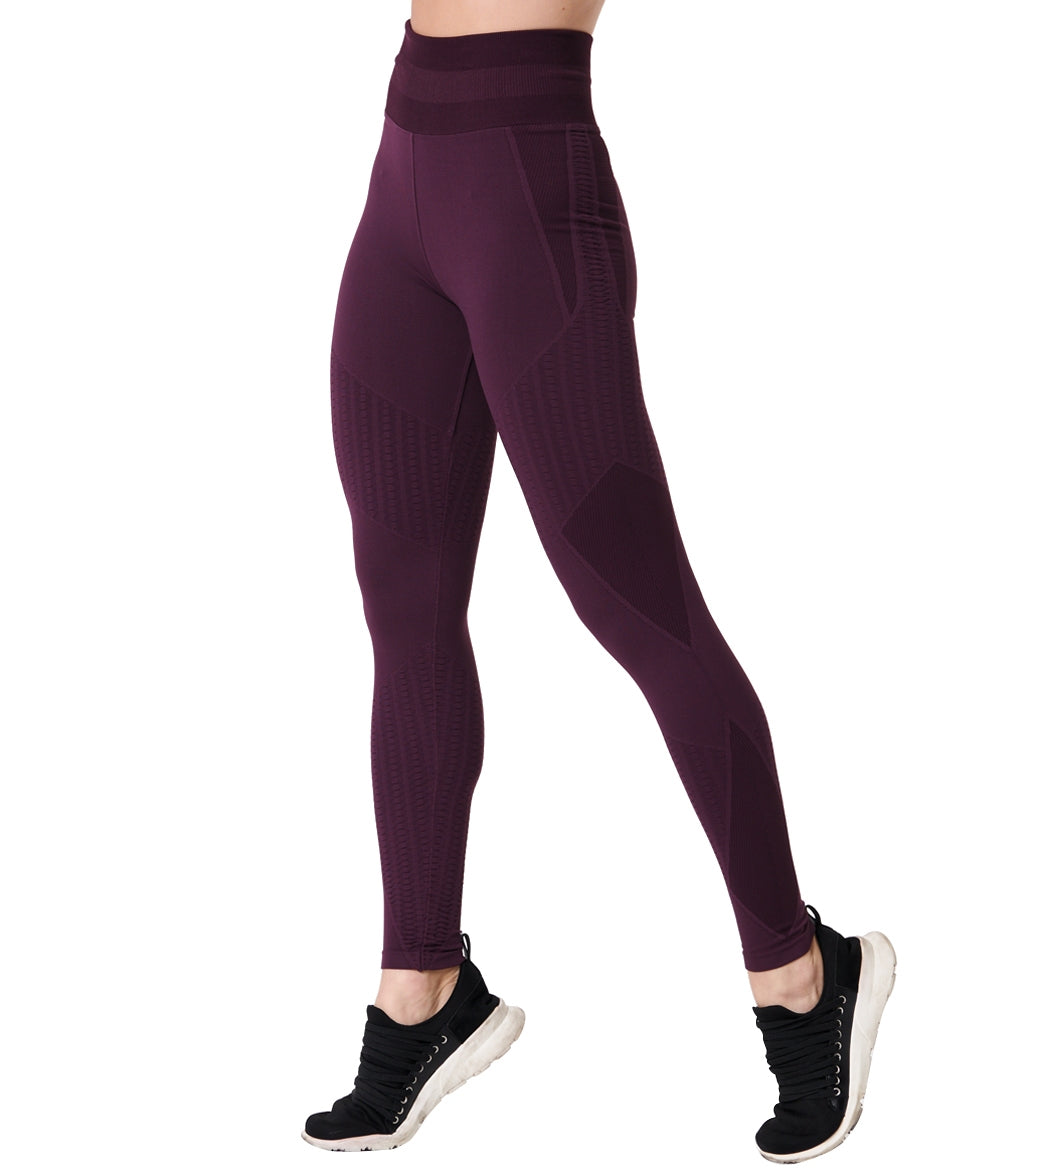 NUX Sphere Yoga Leggings - Purple Nights Spandex